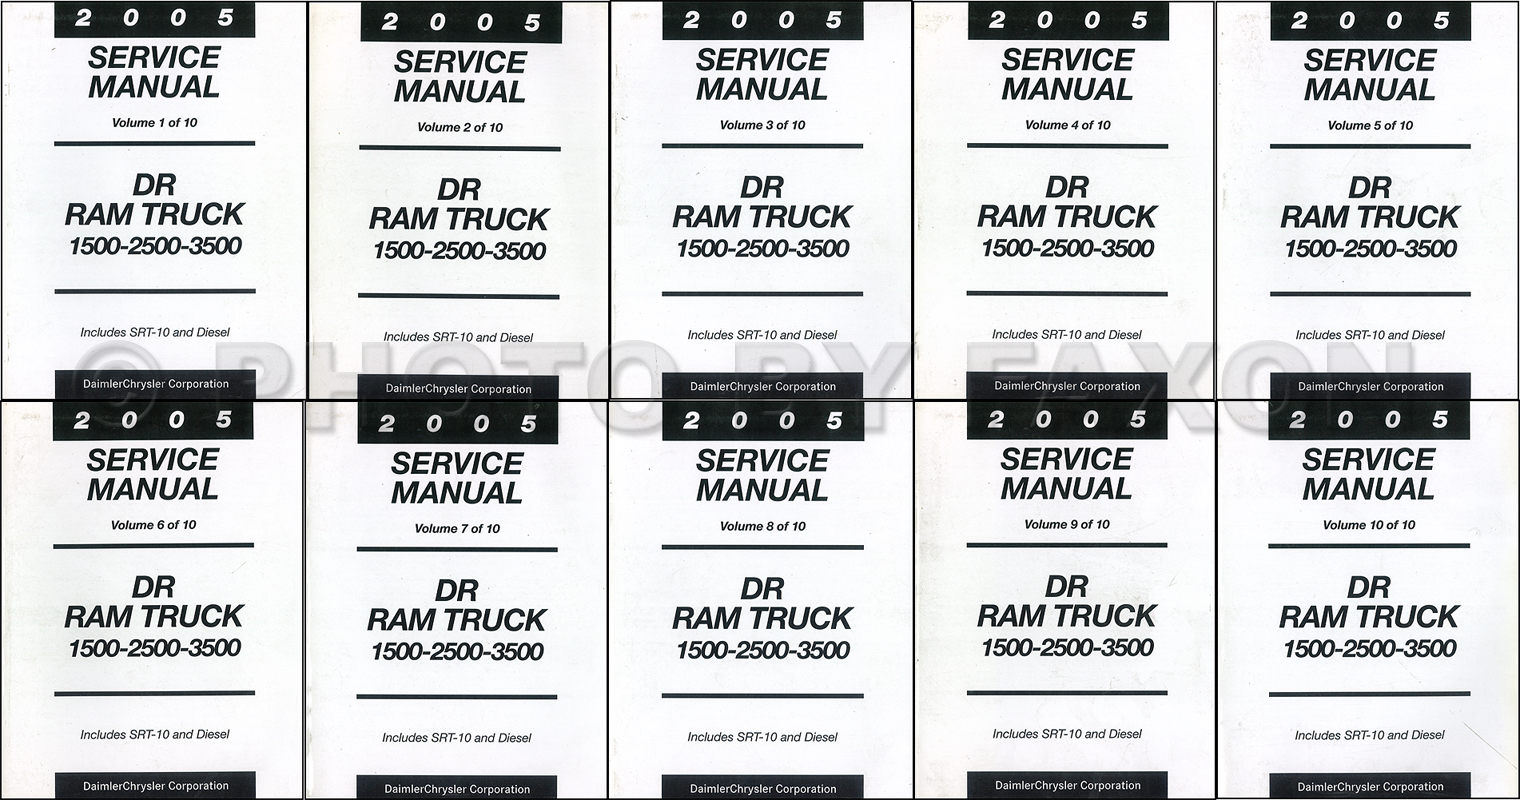 2005 dodge ram truck repair shop manual 10 vol set factory reprint 2005 dodge ram truck repair shop manual 10 vol set factory reprint 1500 2500 3500 cheapraybanclubmaster